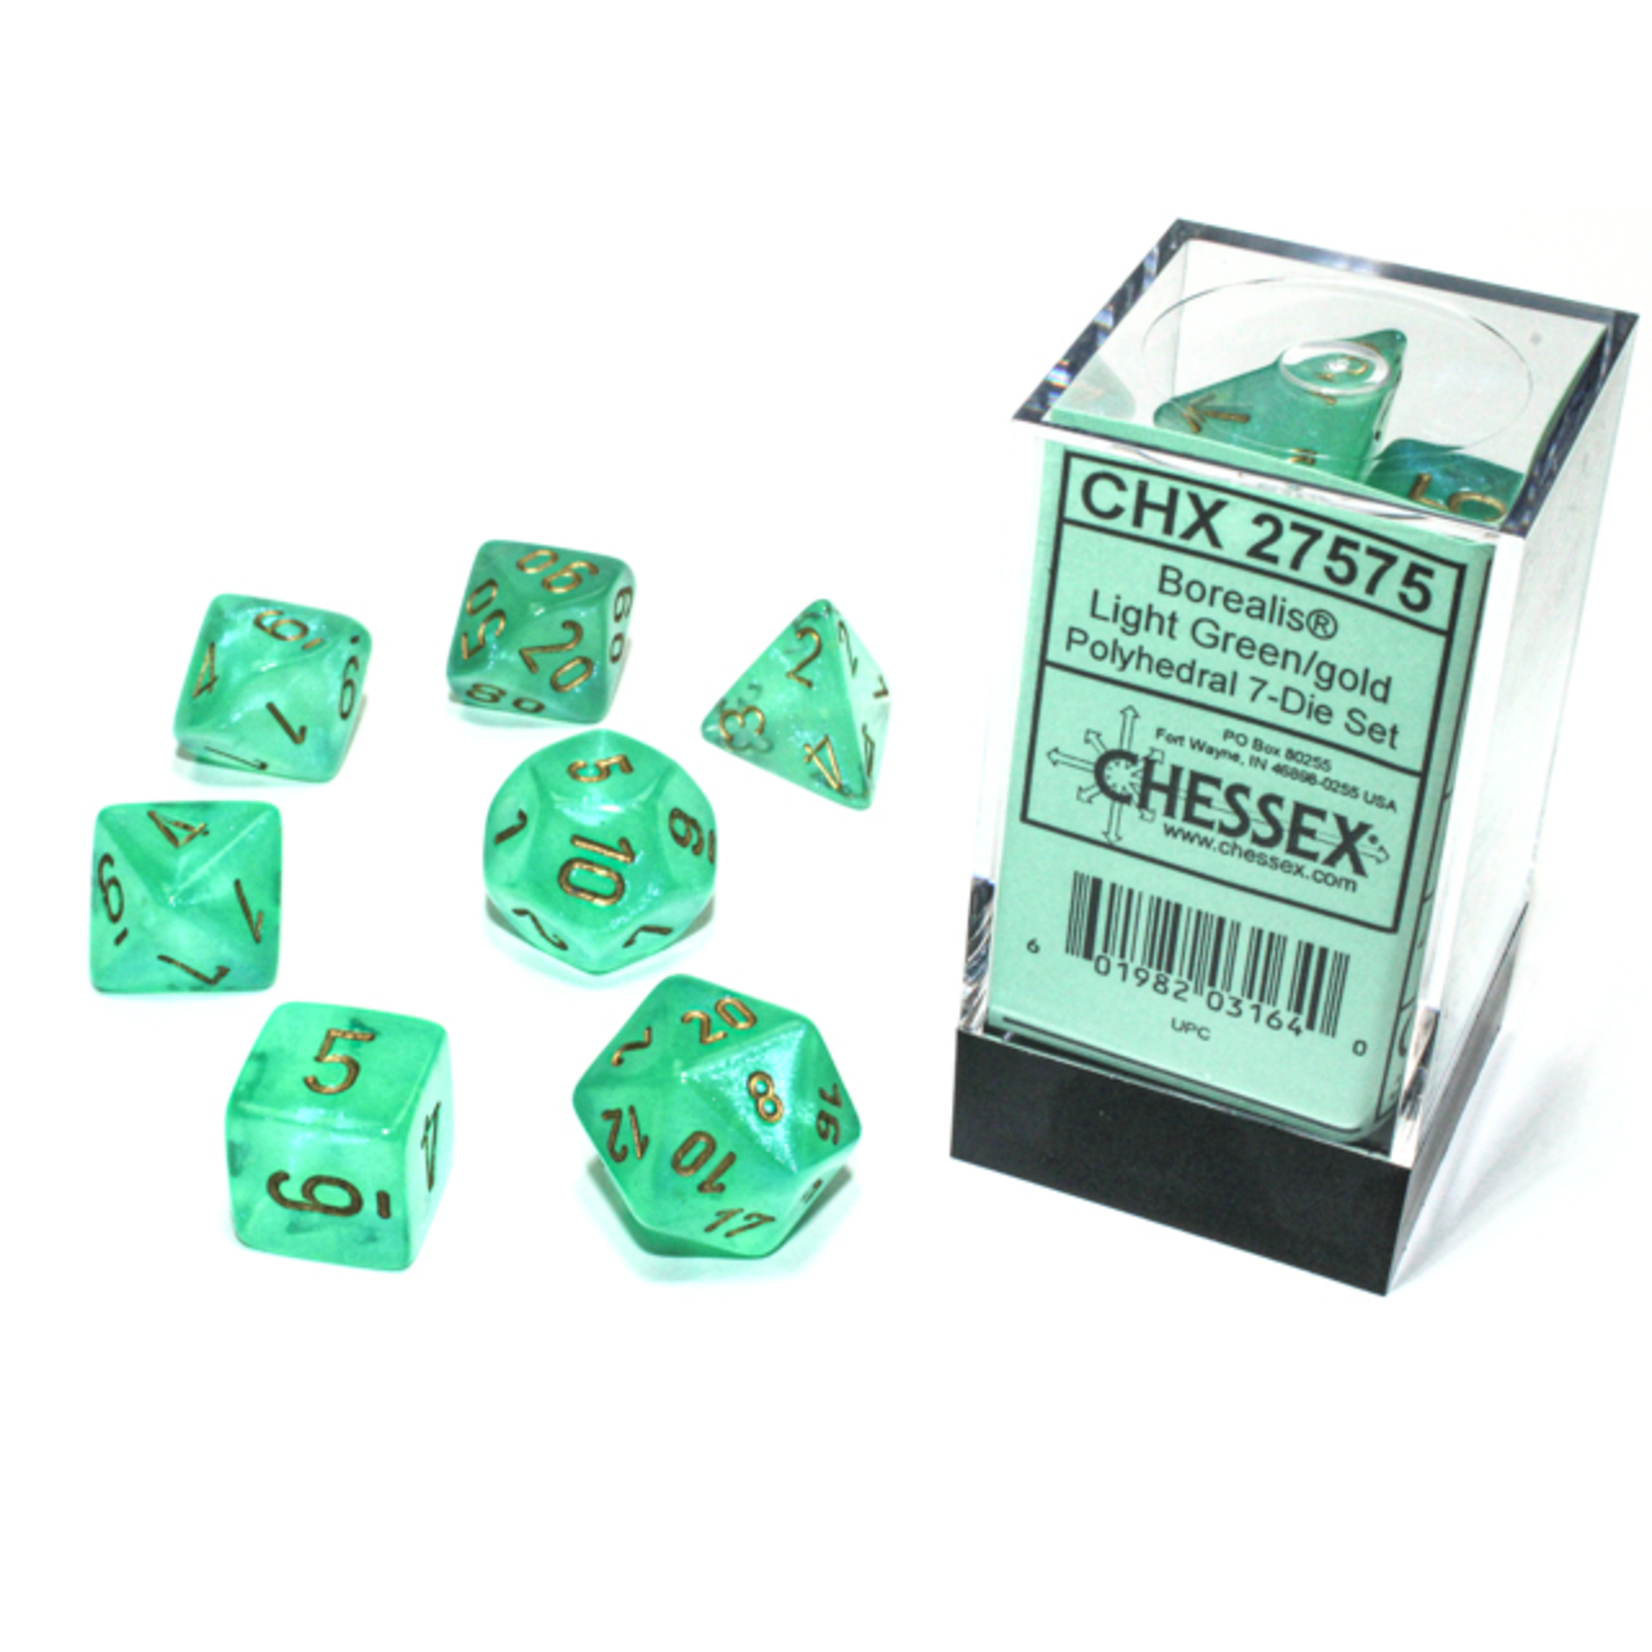 Chessex Dice: 7-Set Borealis Luminary Light Green with Gold Numbers (CHX)